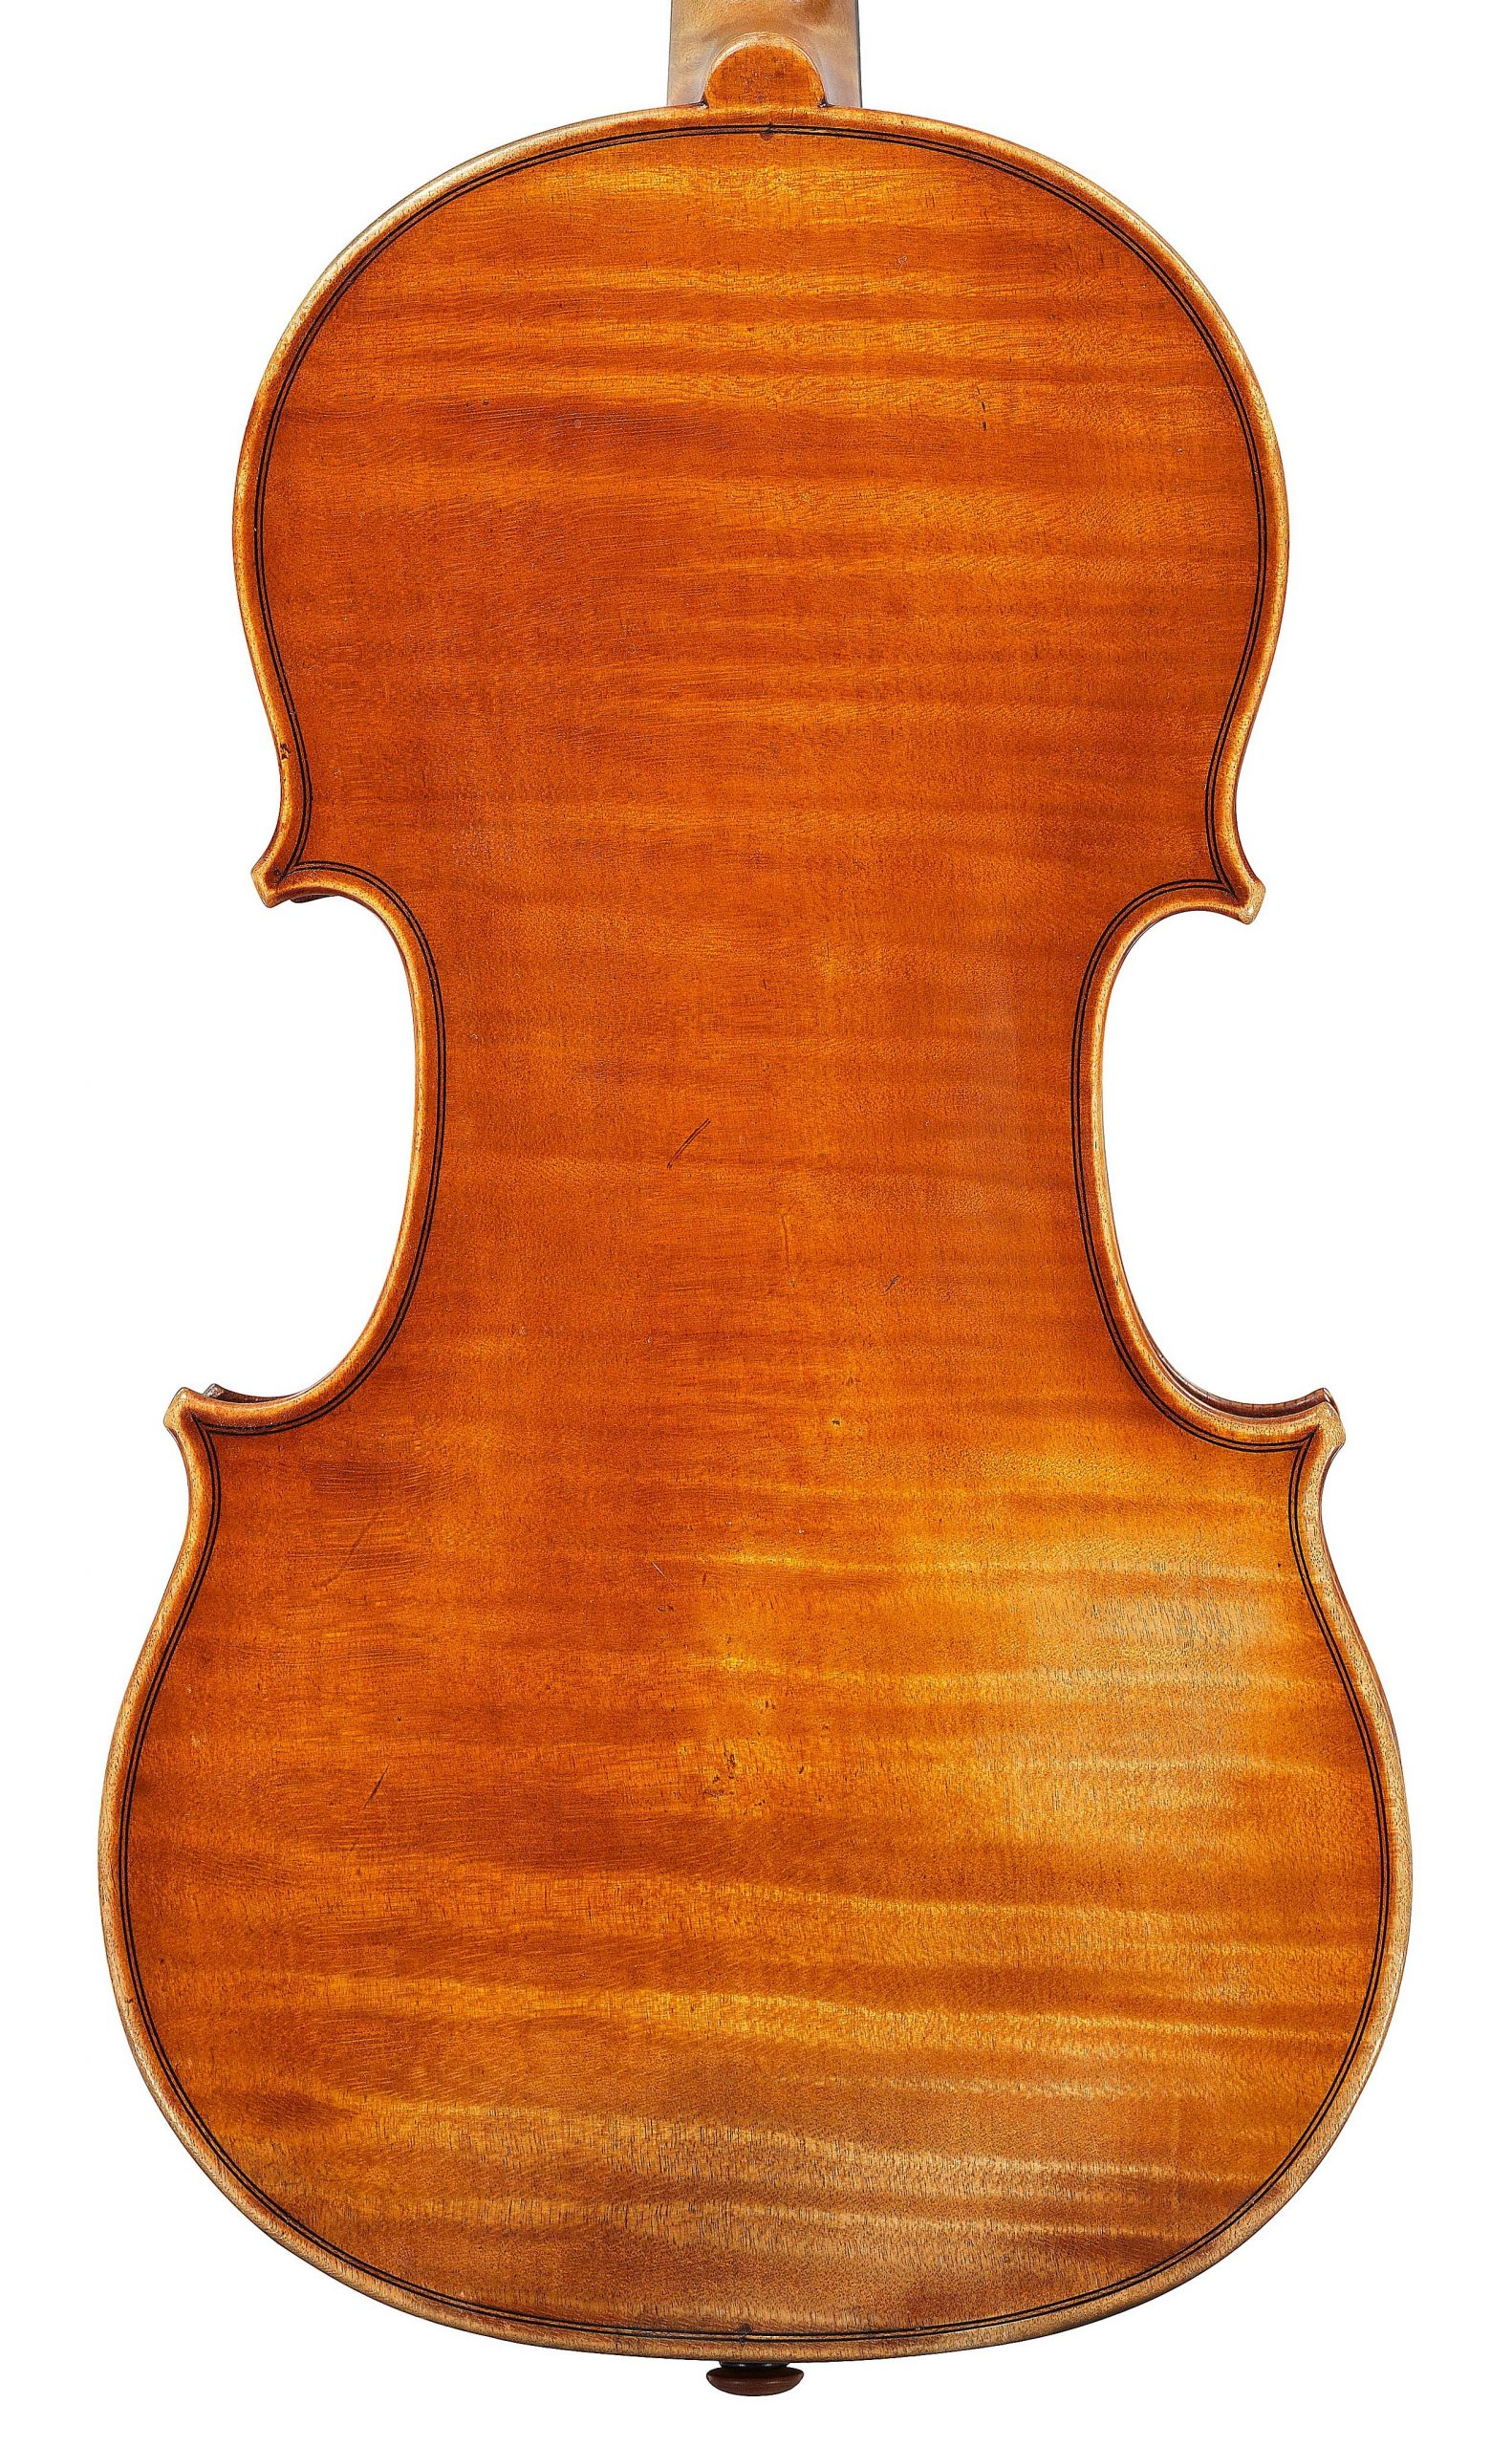 Back of violin by JB Vuillaume, St Paul, dated 1870, exhibited by Ingles & Hayday at Sotheby's in 2012